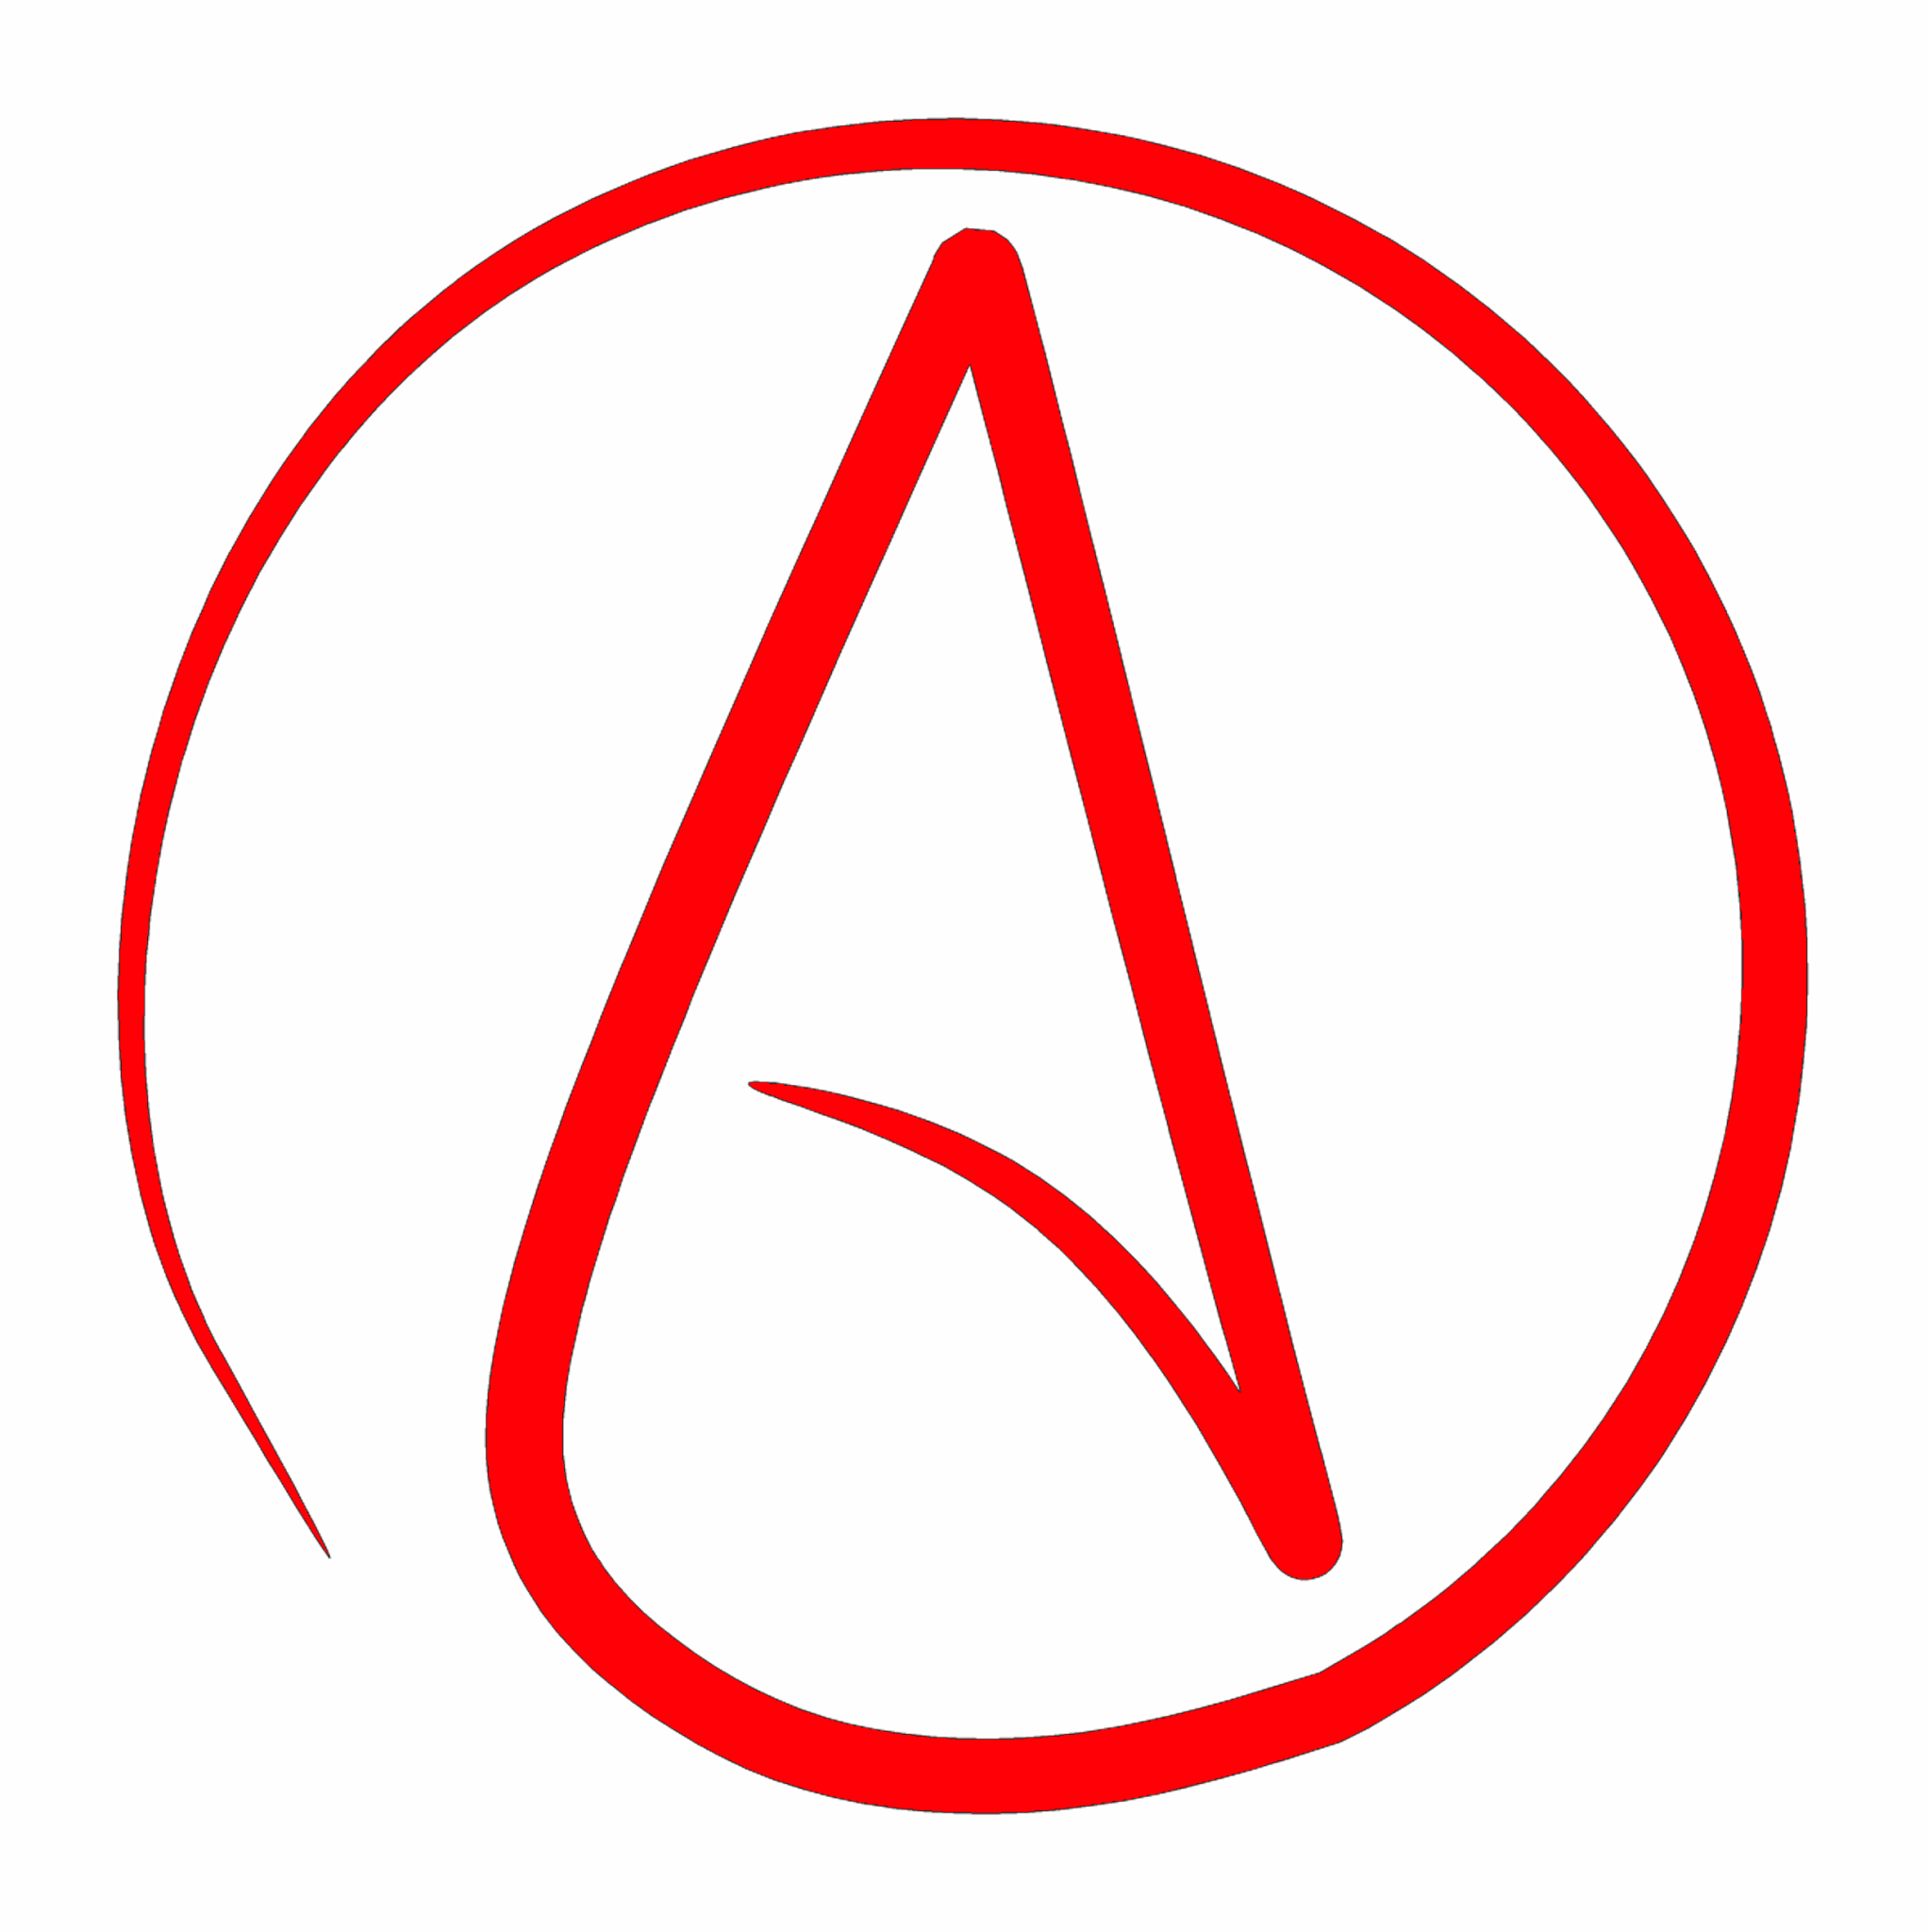 Atheist Symbol canvas tote bag design